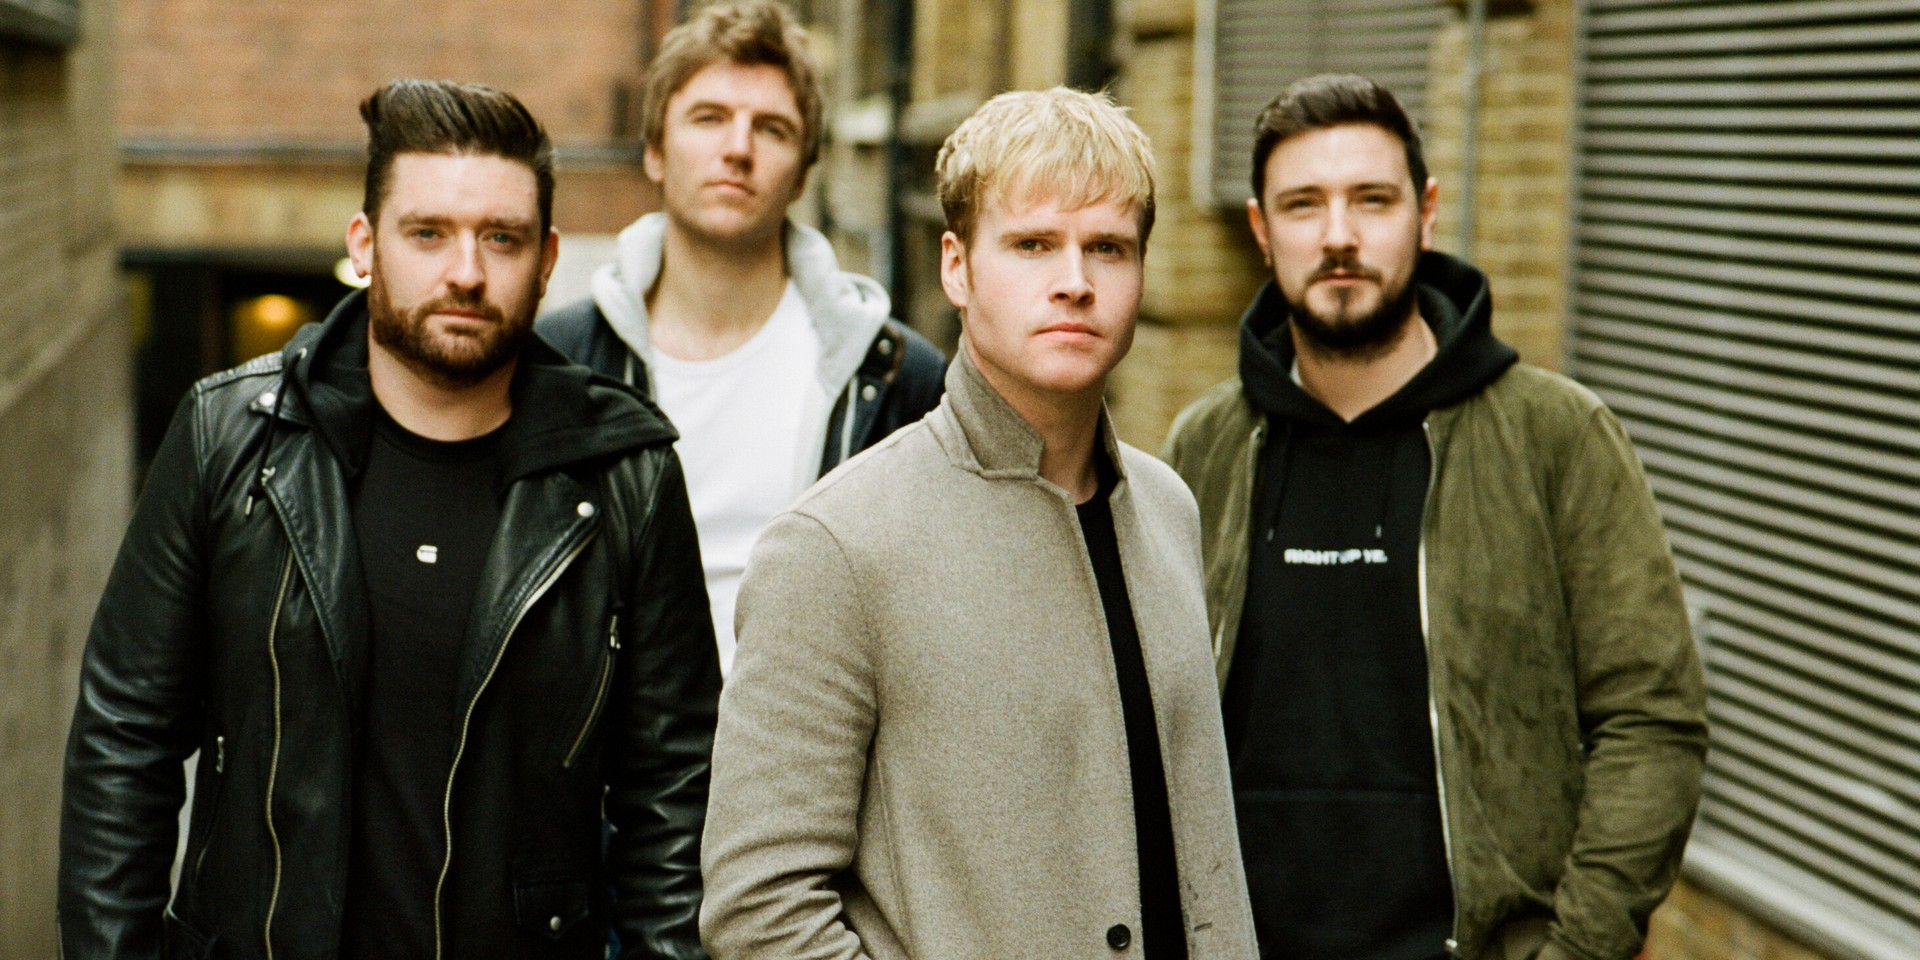 Kodaline's Steve Gariggan talks about coping with self-isolation, 'Saving Grace', the band's new album, and more